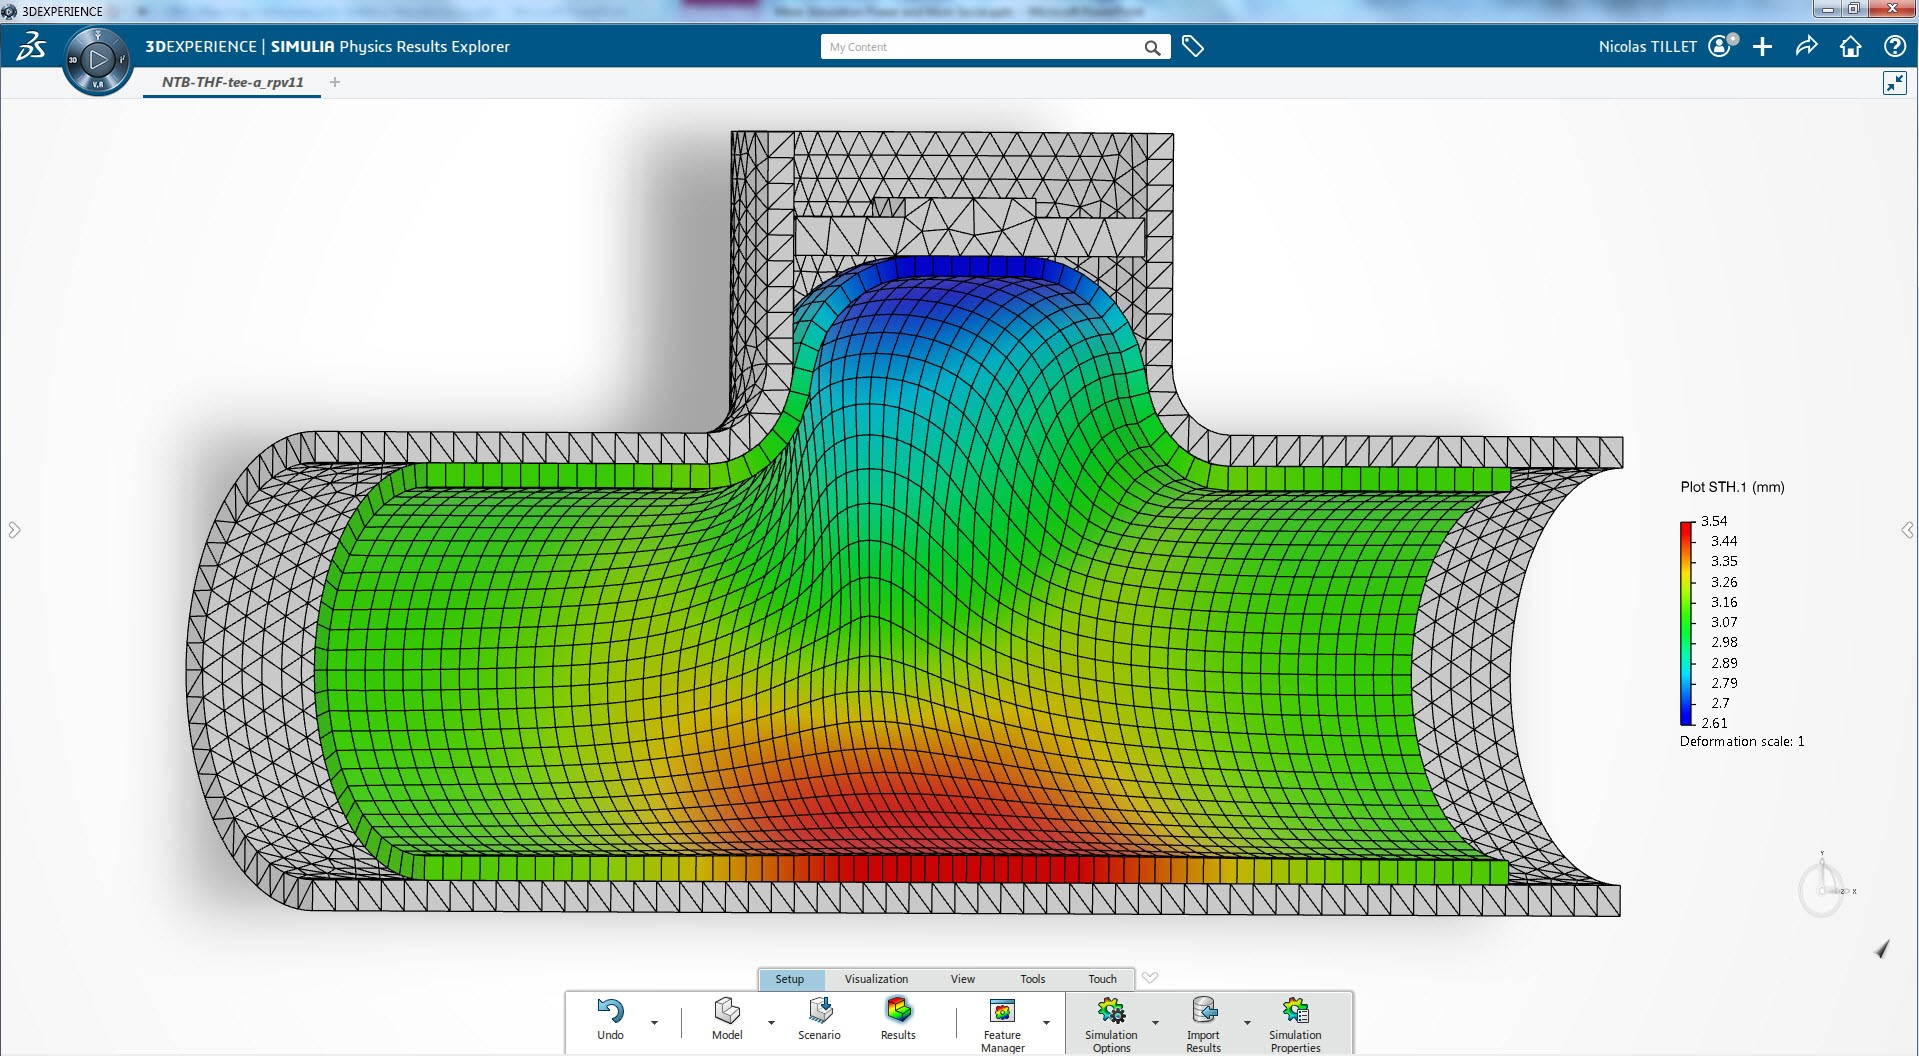 SIMULIA Structural Simulation Engineer - Solving Complex